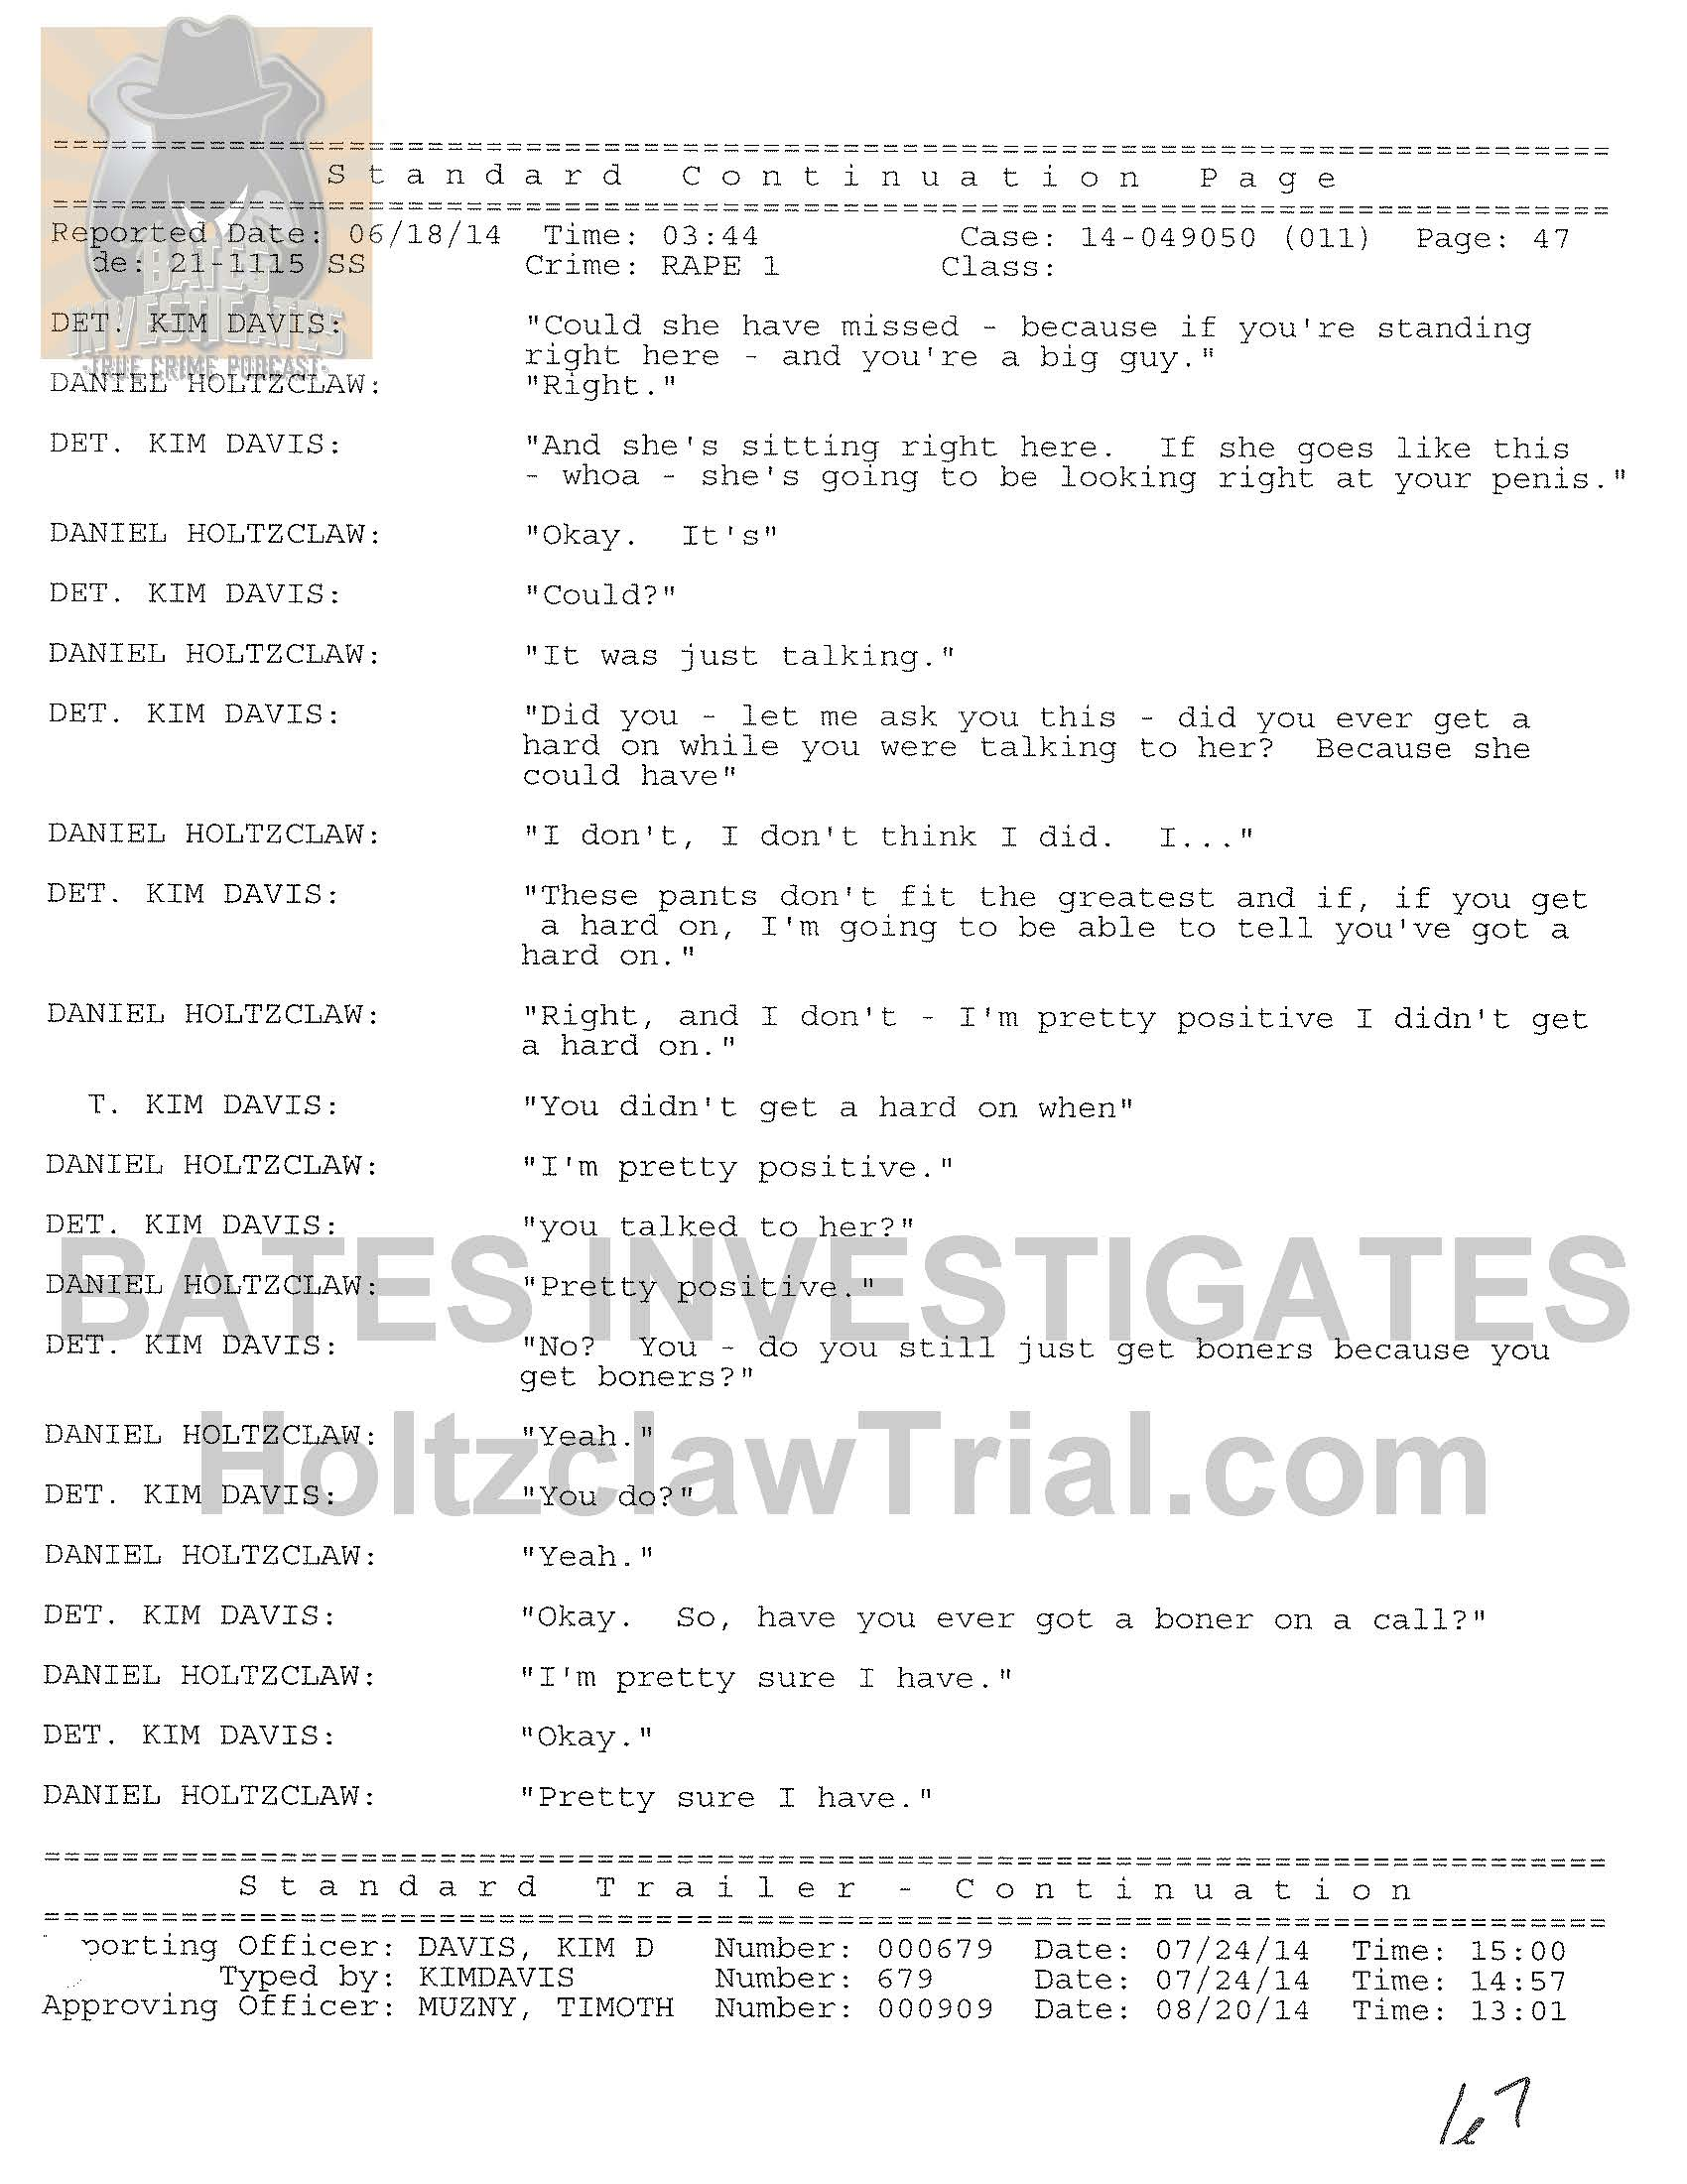 Holtzclaw Interrogation Transcript - Ep02 Redacted_Page_47.jpg